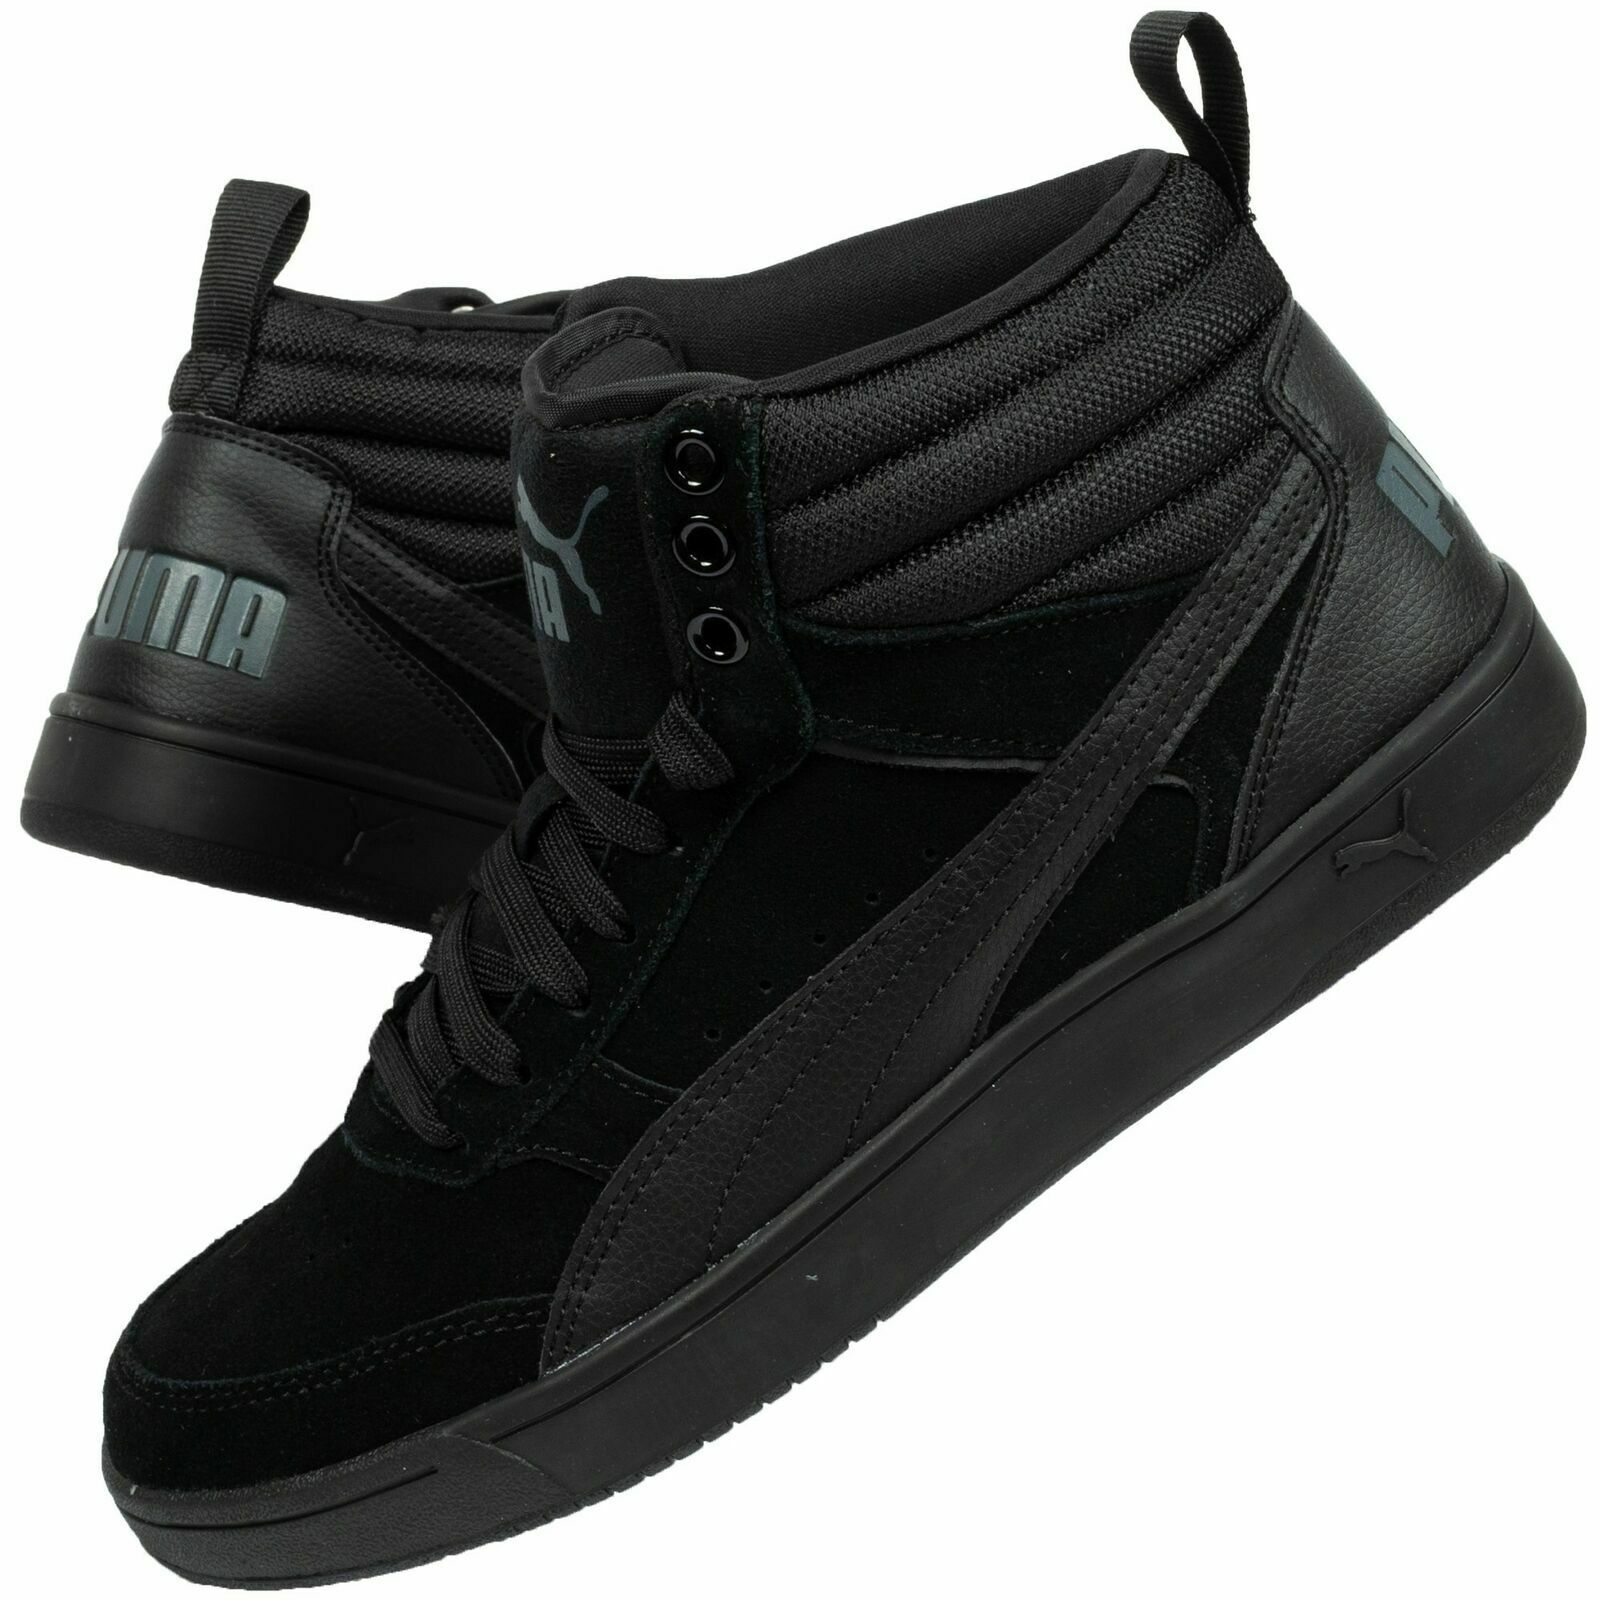 b45fd74282 Men's Puma Rebound Street V2 SD Black Suede High Top Basketball Boots  Trainers